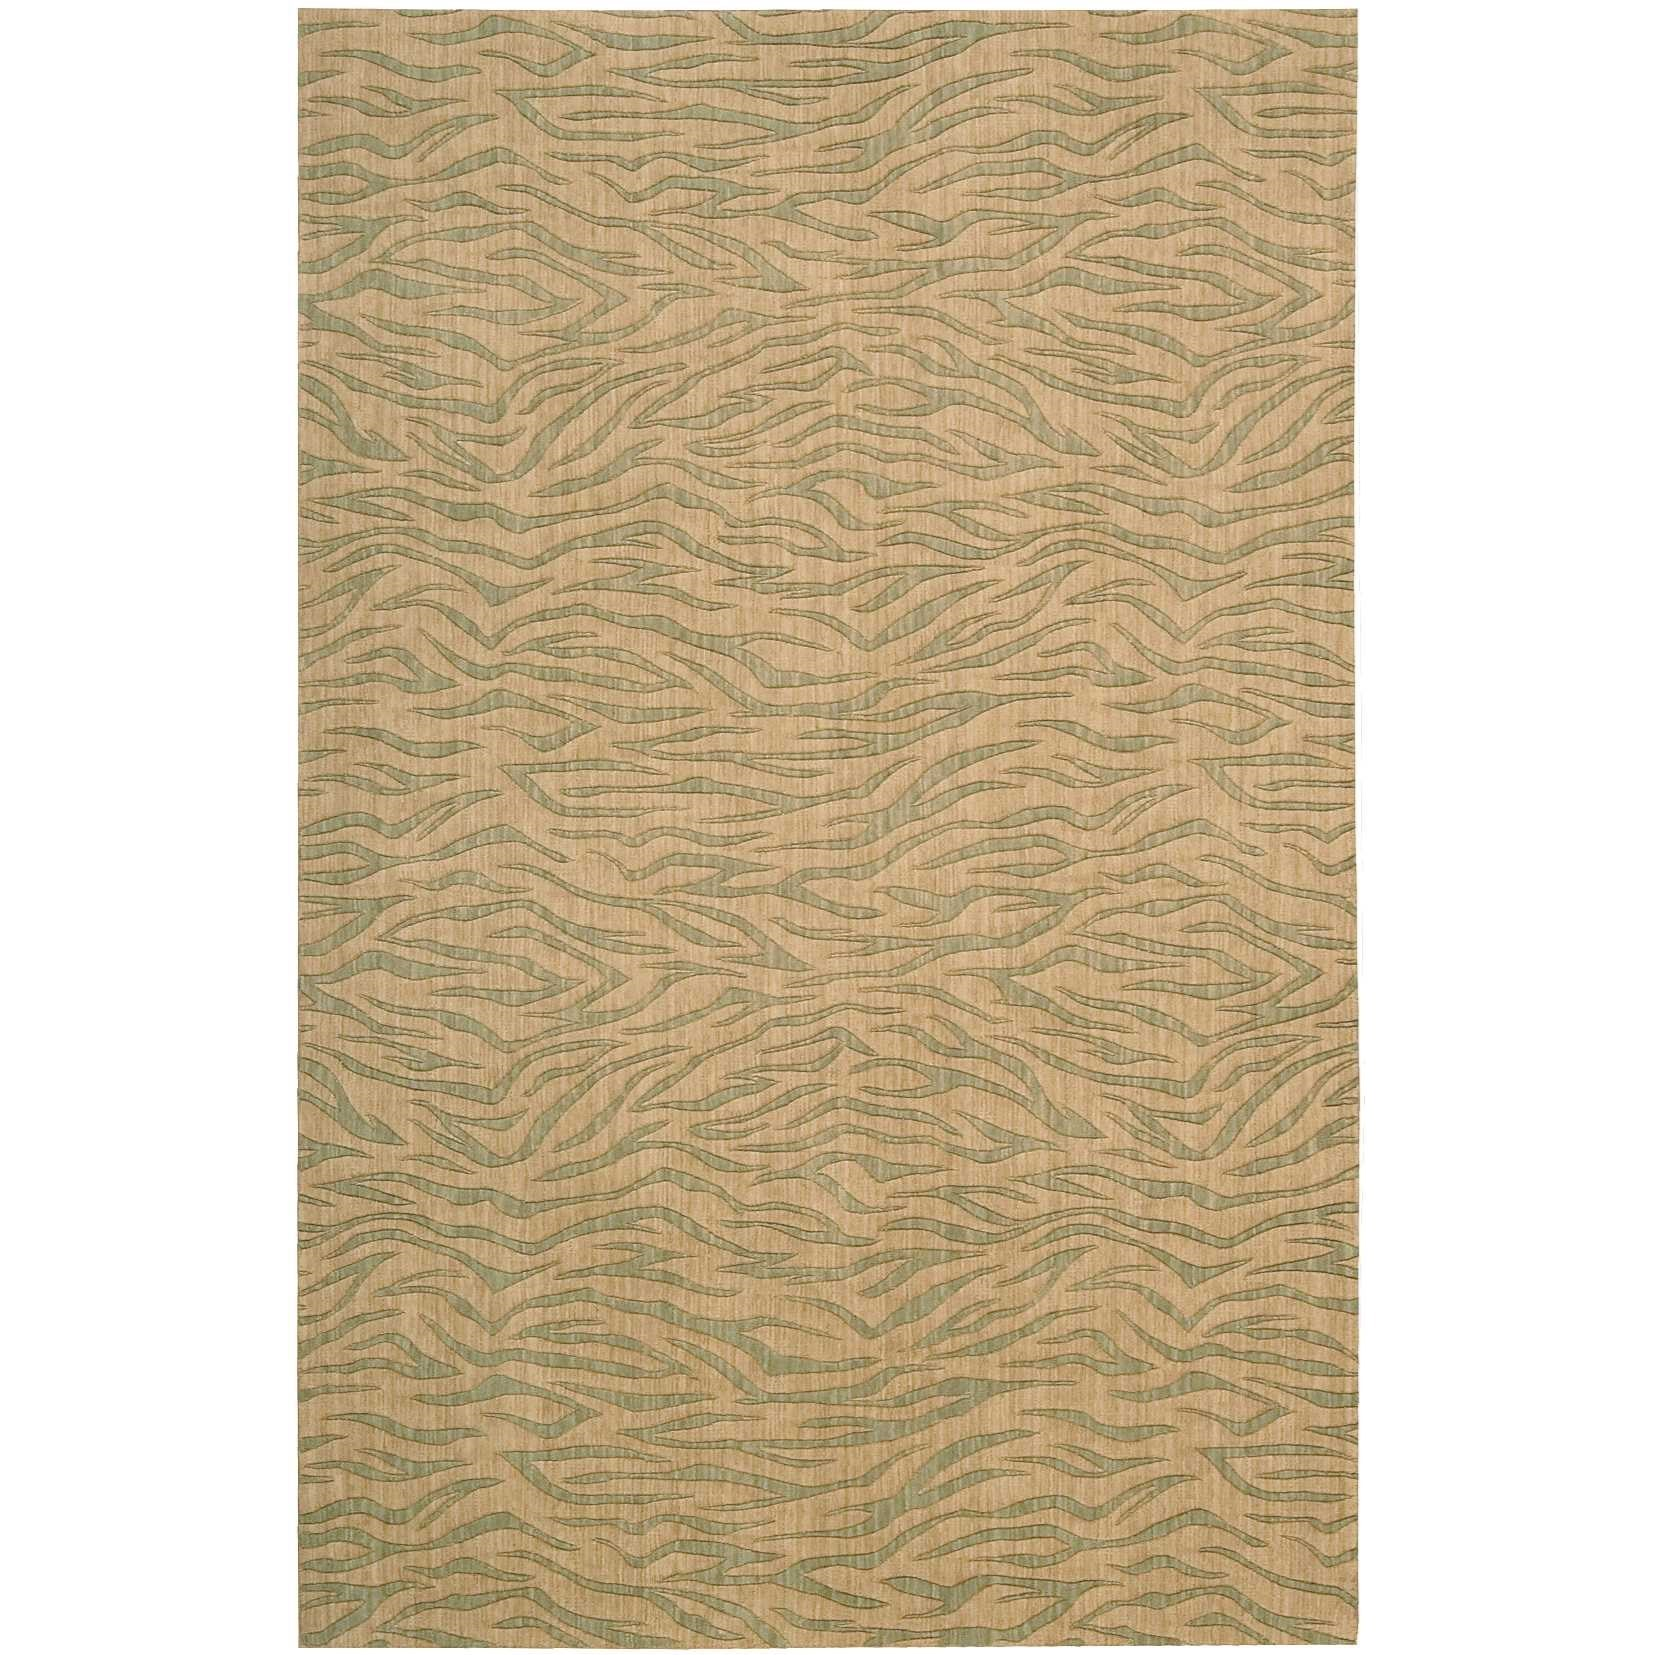 "Cosmopolitan 3'6"" x 5'6"" Beige Green Rectangle Rug by Nourison at Home Collections Furniture"